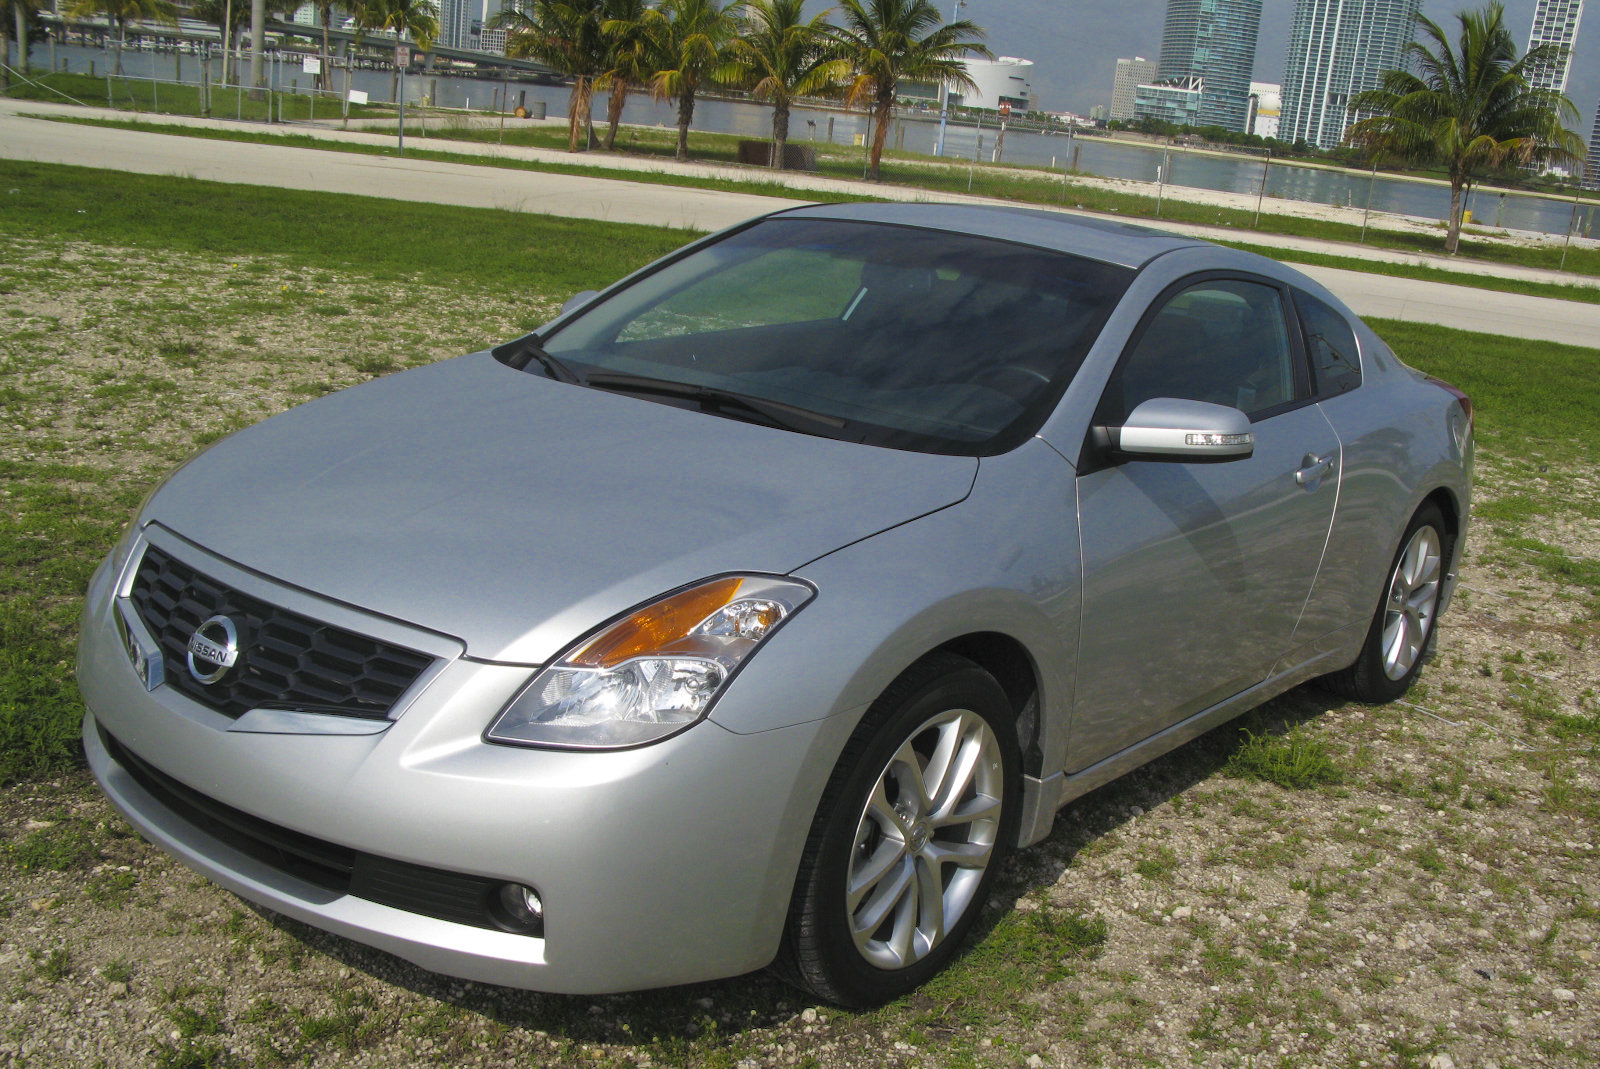 2009 nissan altima coupe 3 5 se picture 303330 car review top speed. Black Bedroom Furniture Sets. Home Design Ideas